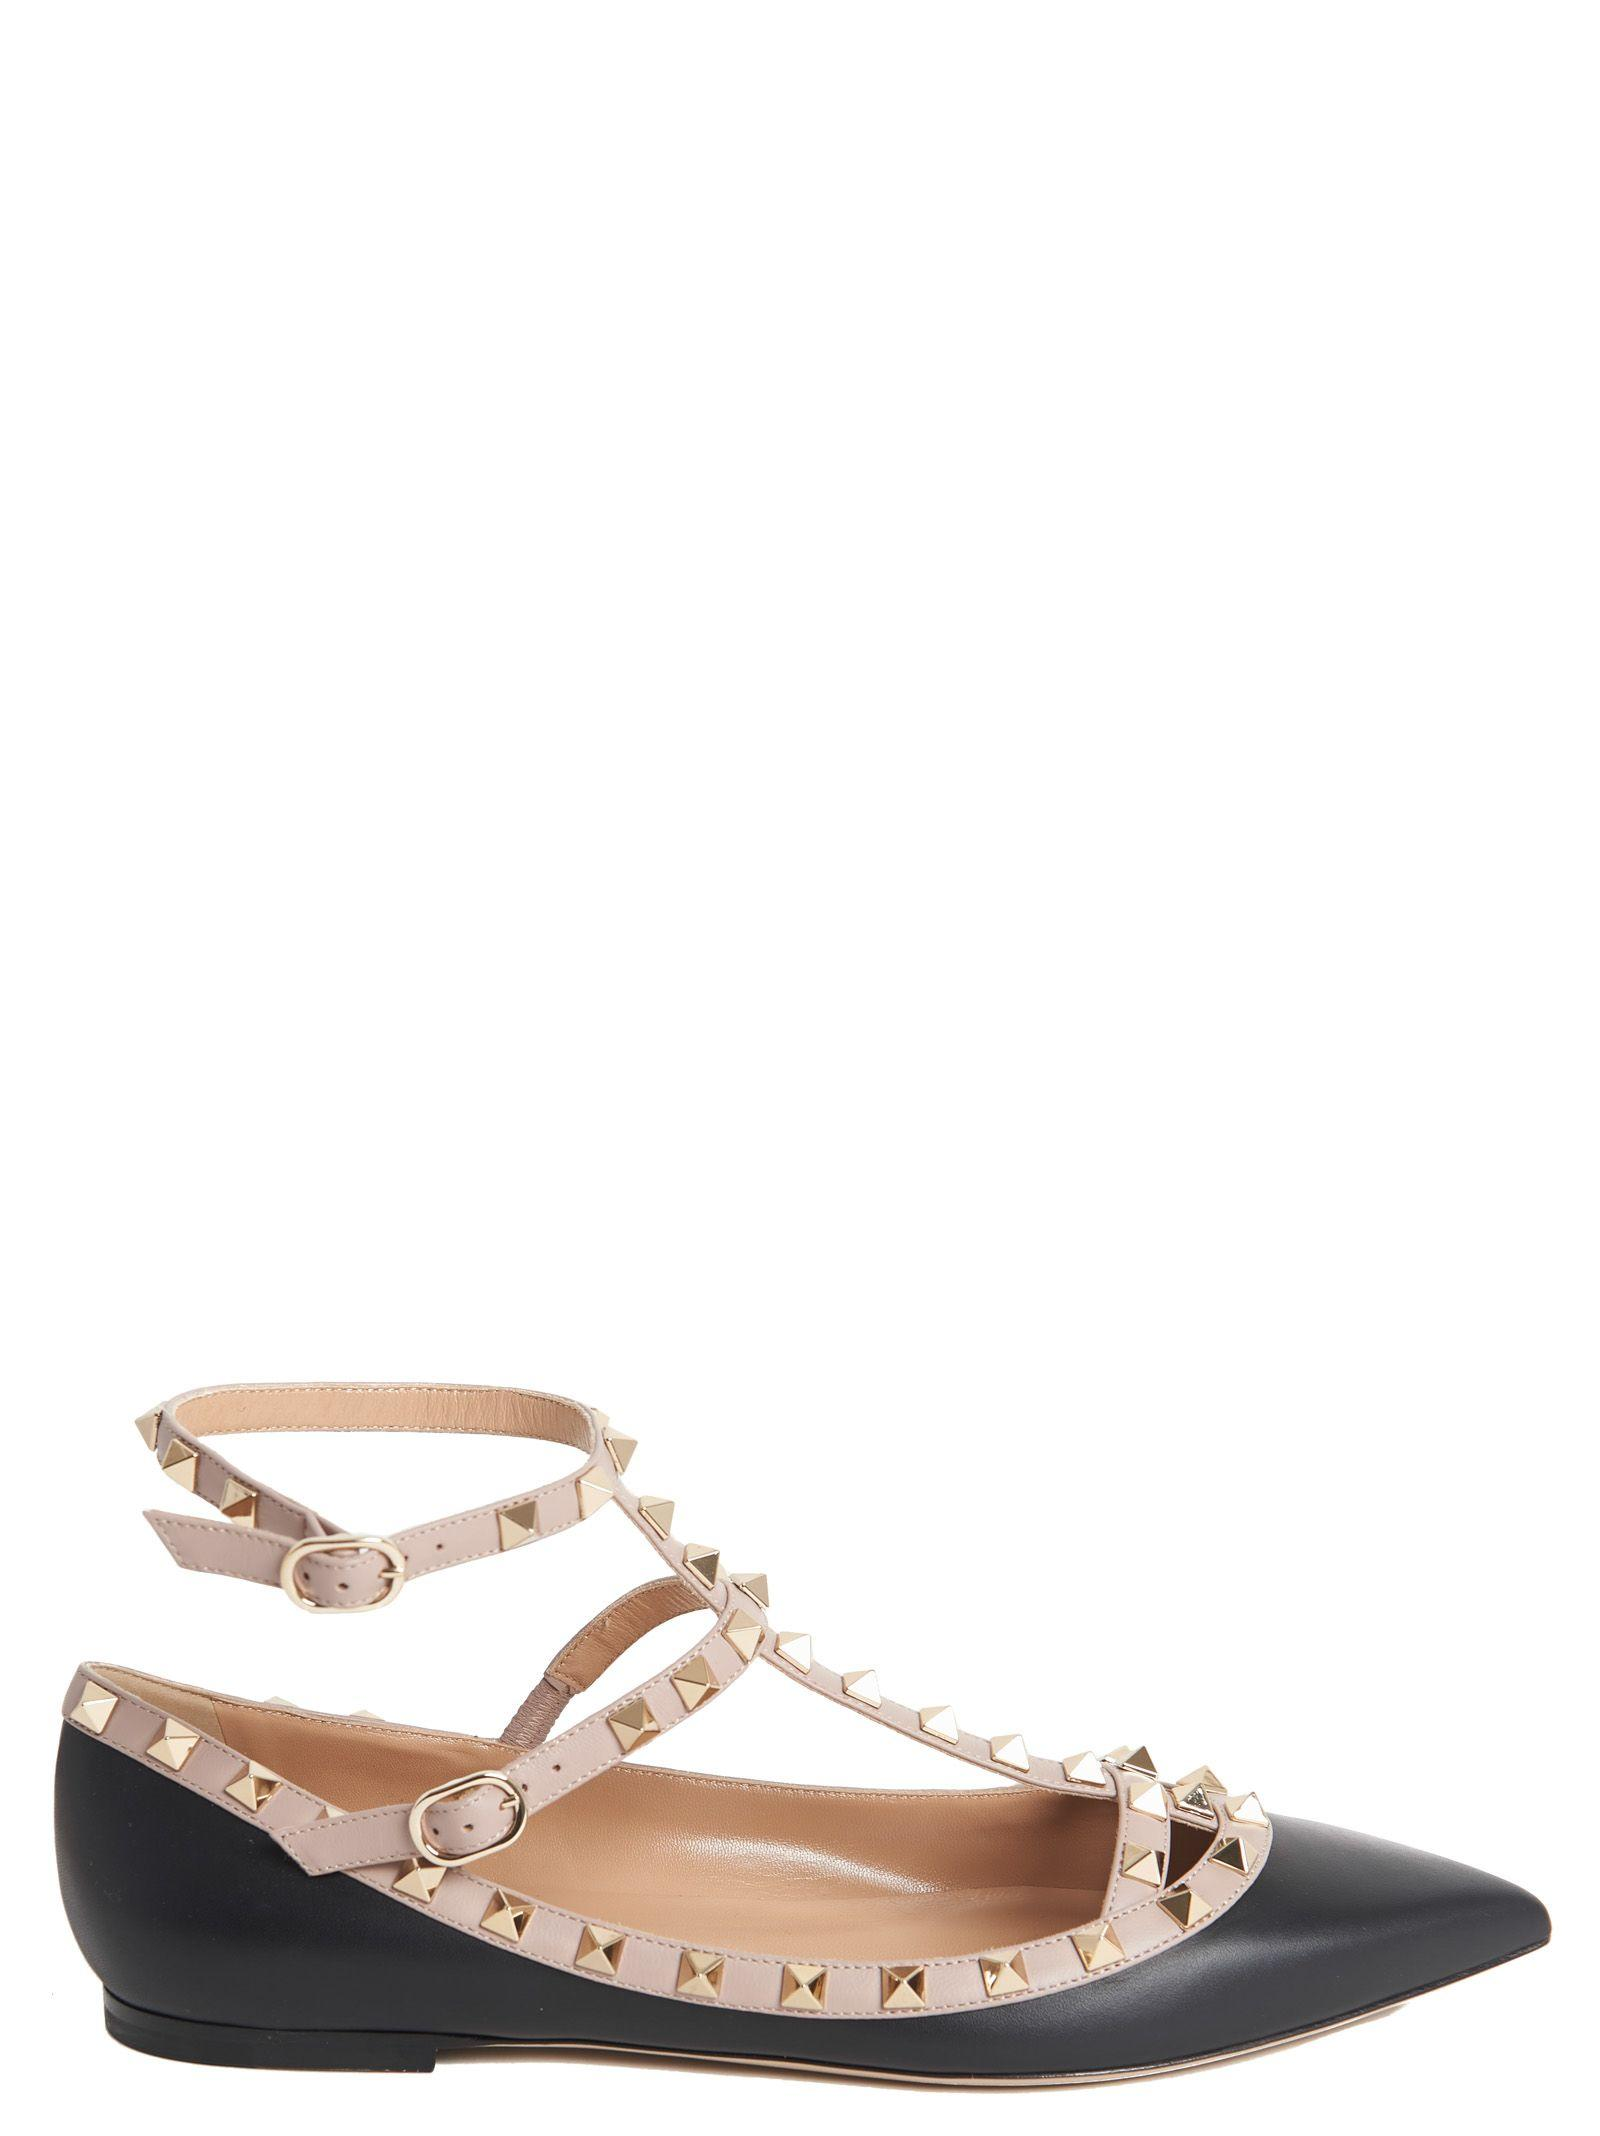 Valentino Flat In Black